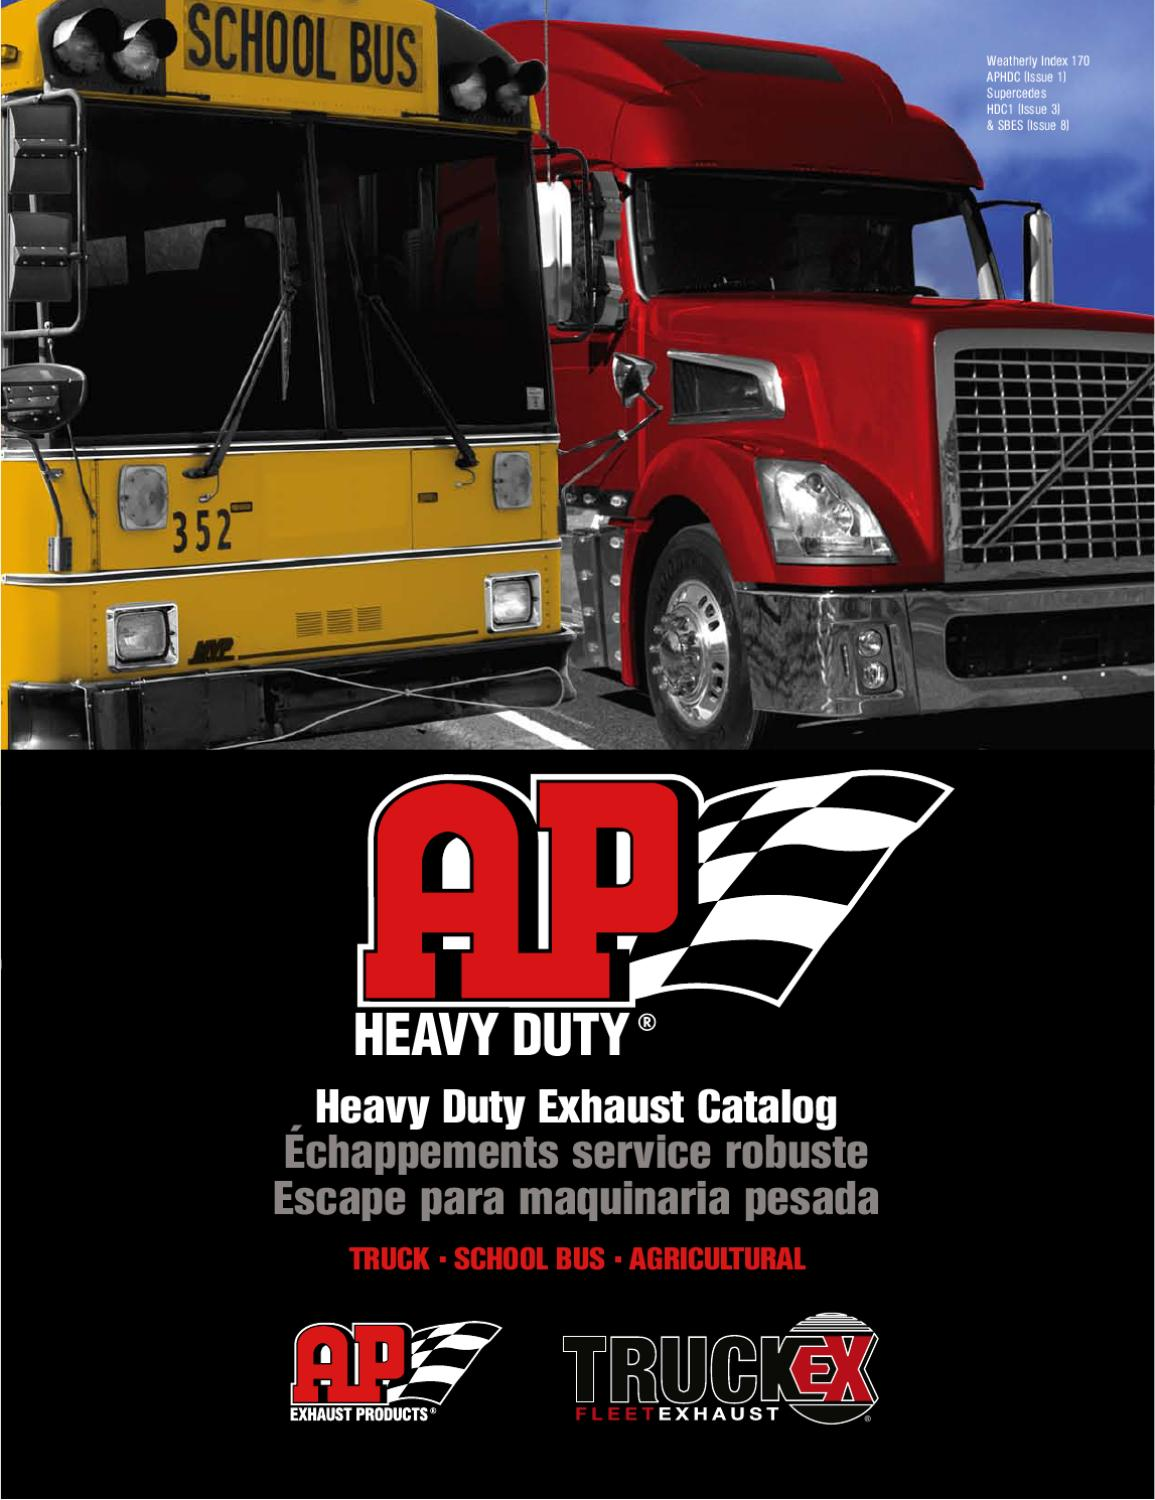 hight resolution of  aphdc hd exhaust catalog from ap exhaust